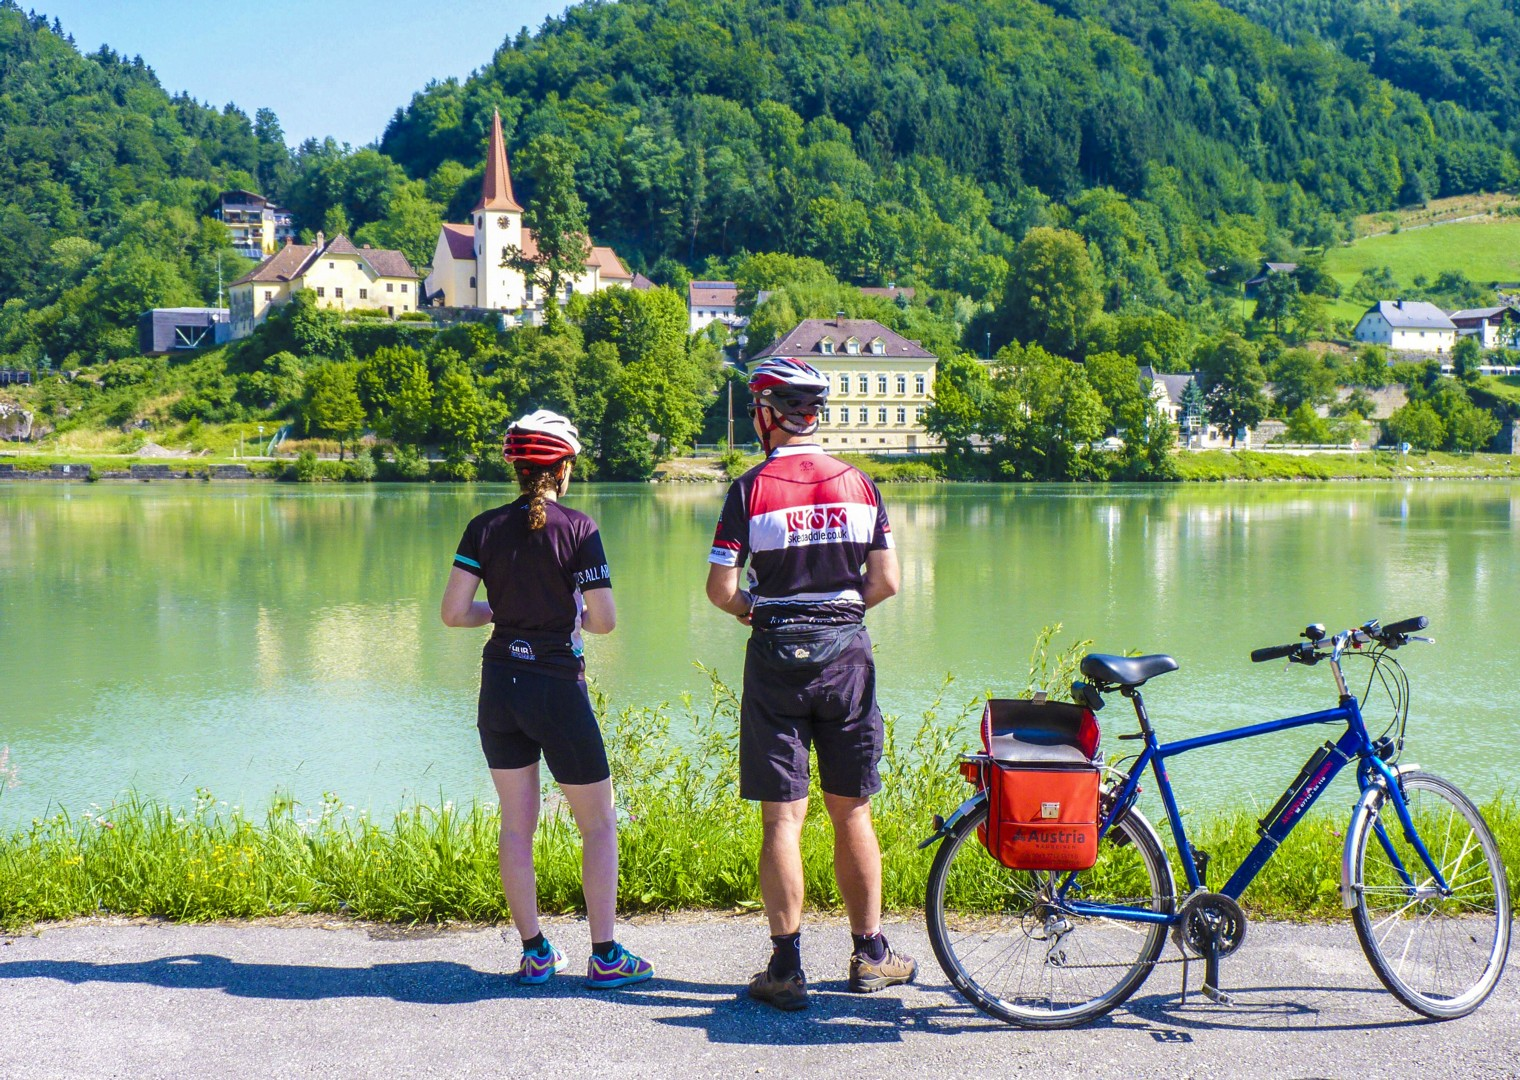 germany-austria-danube-cycle-path-self-guided-skedaddle-cycling-holiday.jpg - Germany and Austria - The Danube Cyclepath (8 Days) - Self-Guided Leisure Cycling Holiday - Leisure Cycling